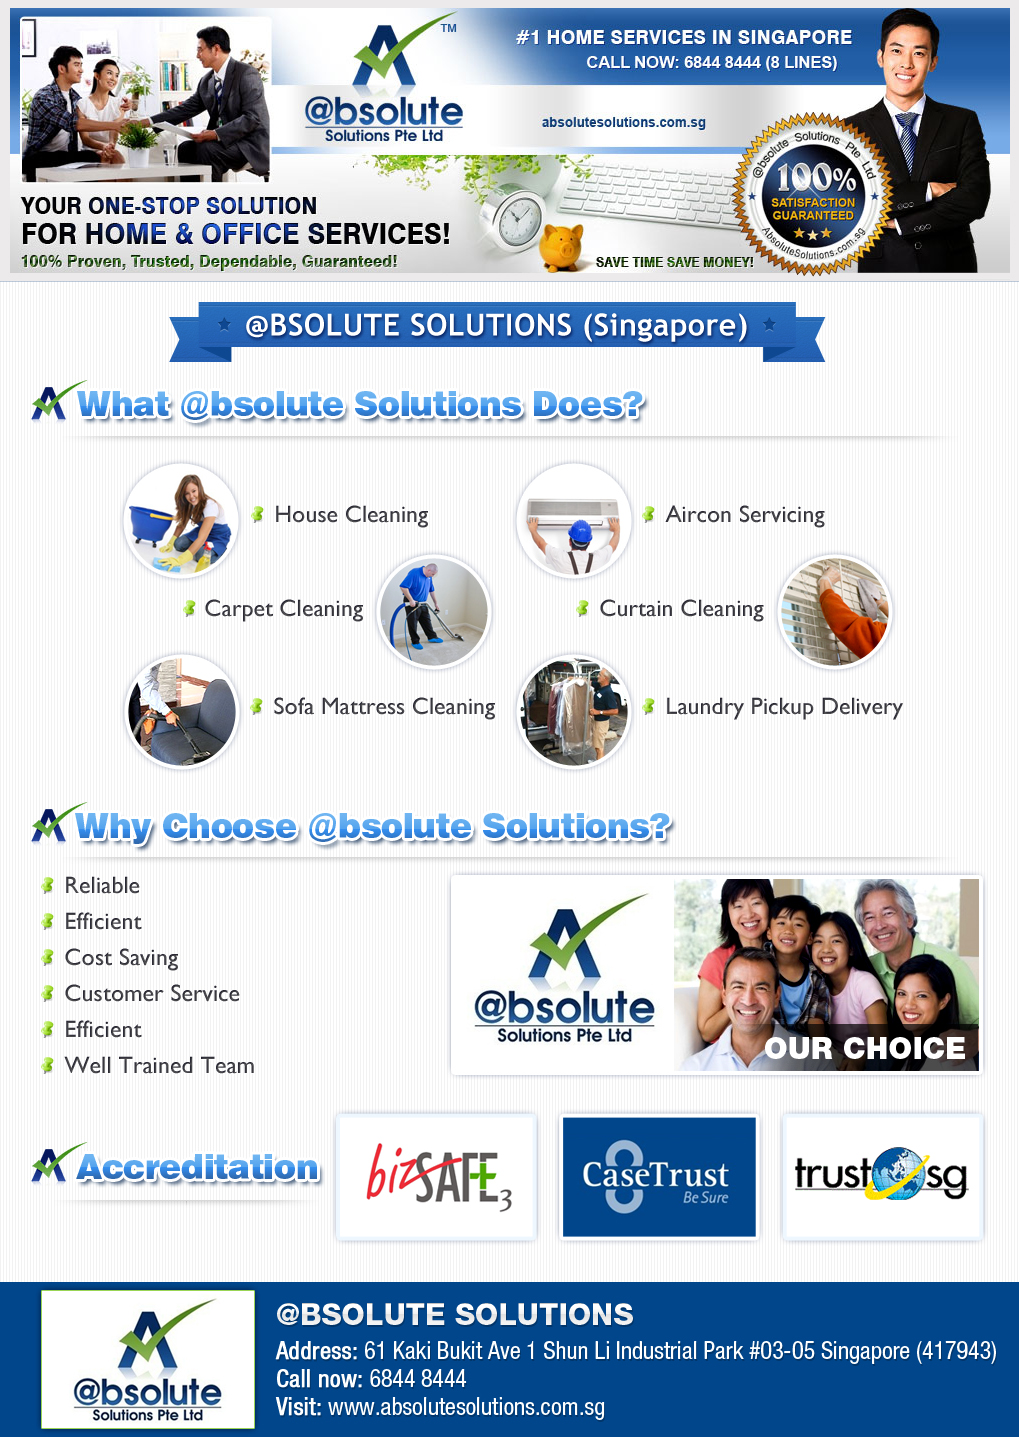 cleaning service bsolute solutions pte bsolute what we do infographic